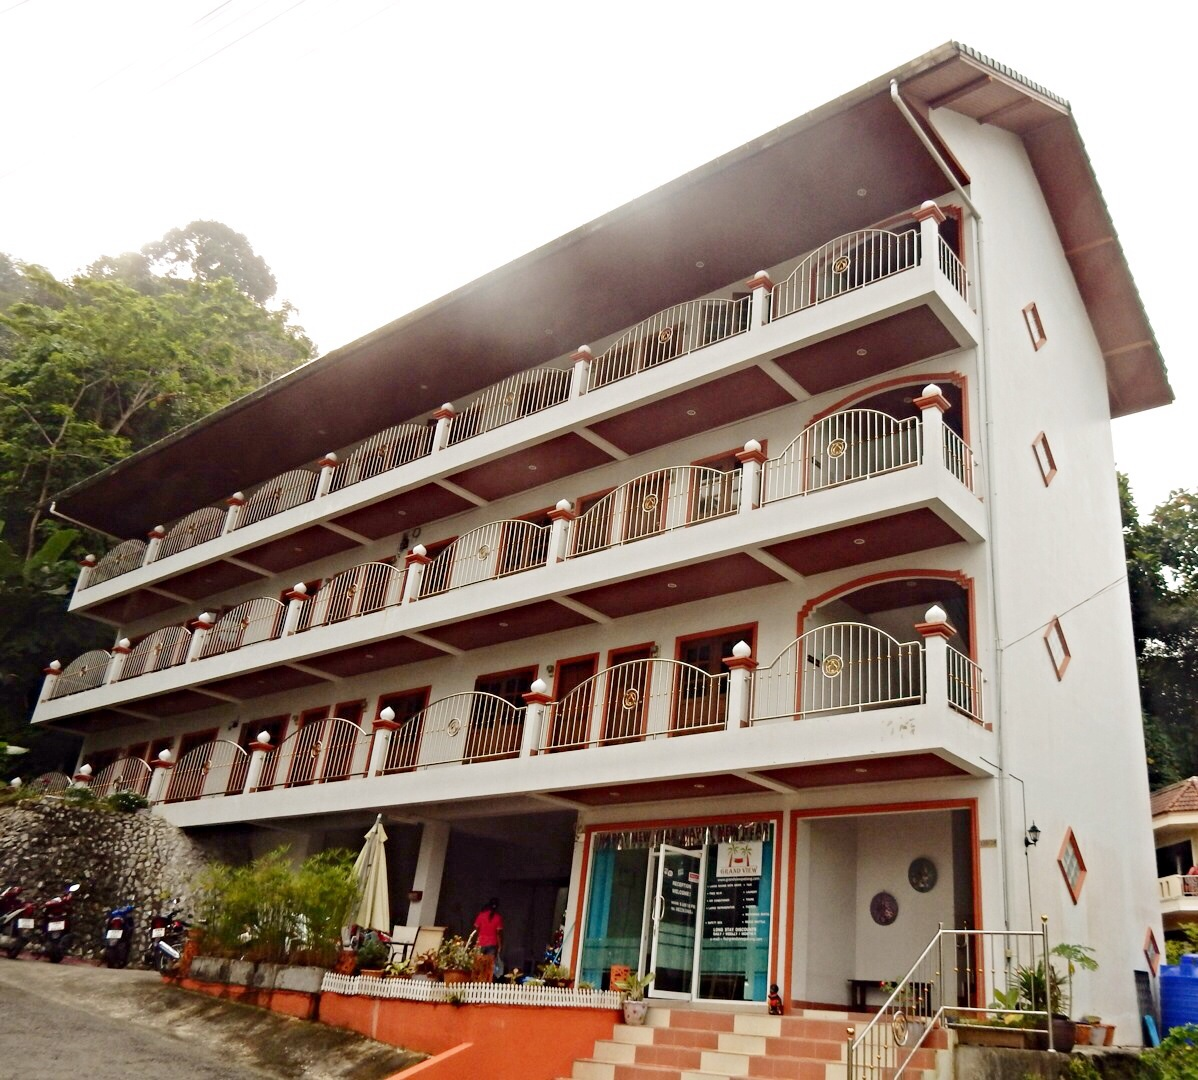 Grand View Hotel in Patong Beach